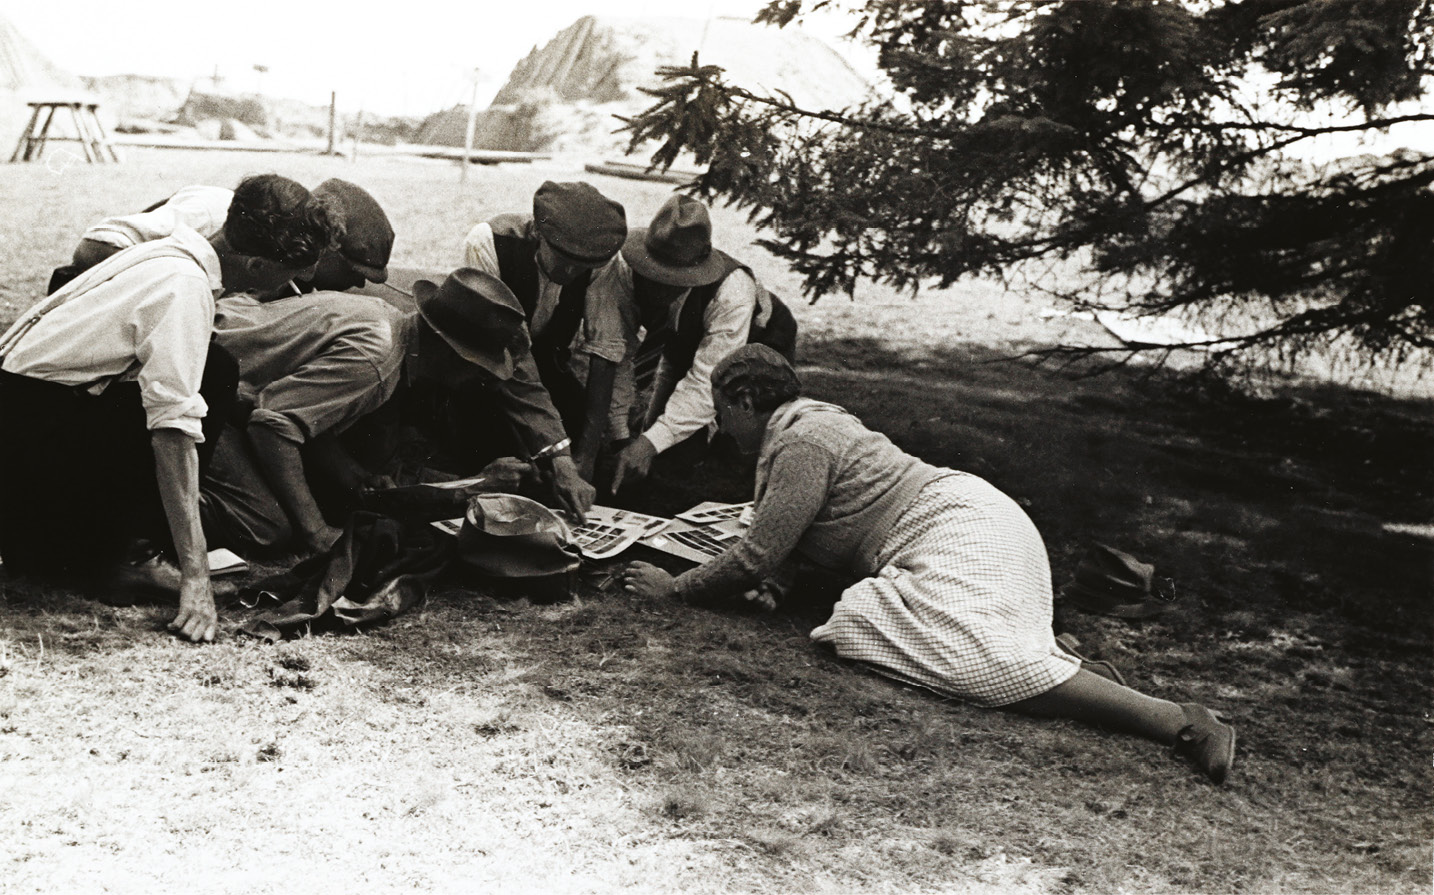 LEFT Mercie Lack and Barbara Wagstaff's images represent most of our photographic record of the 1939 Sutton Hoo excavation. Here, Barbara's photo shows Mercie with members of the dig team might she be showing them her and Barbara's work?